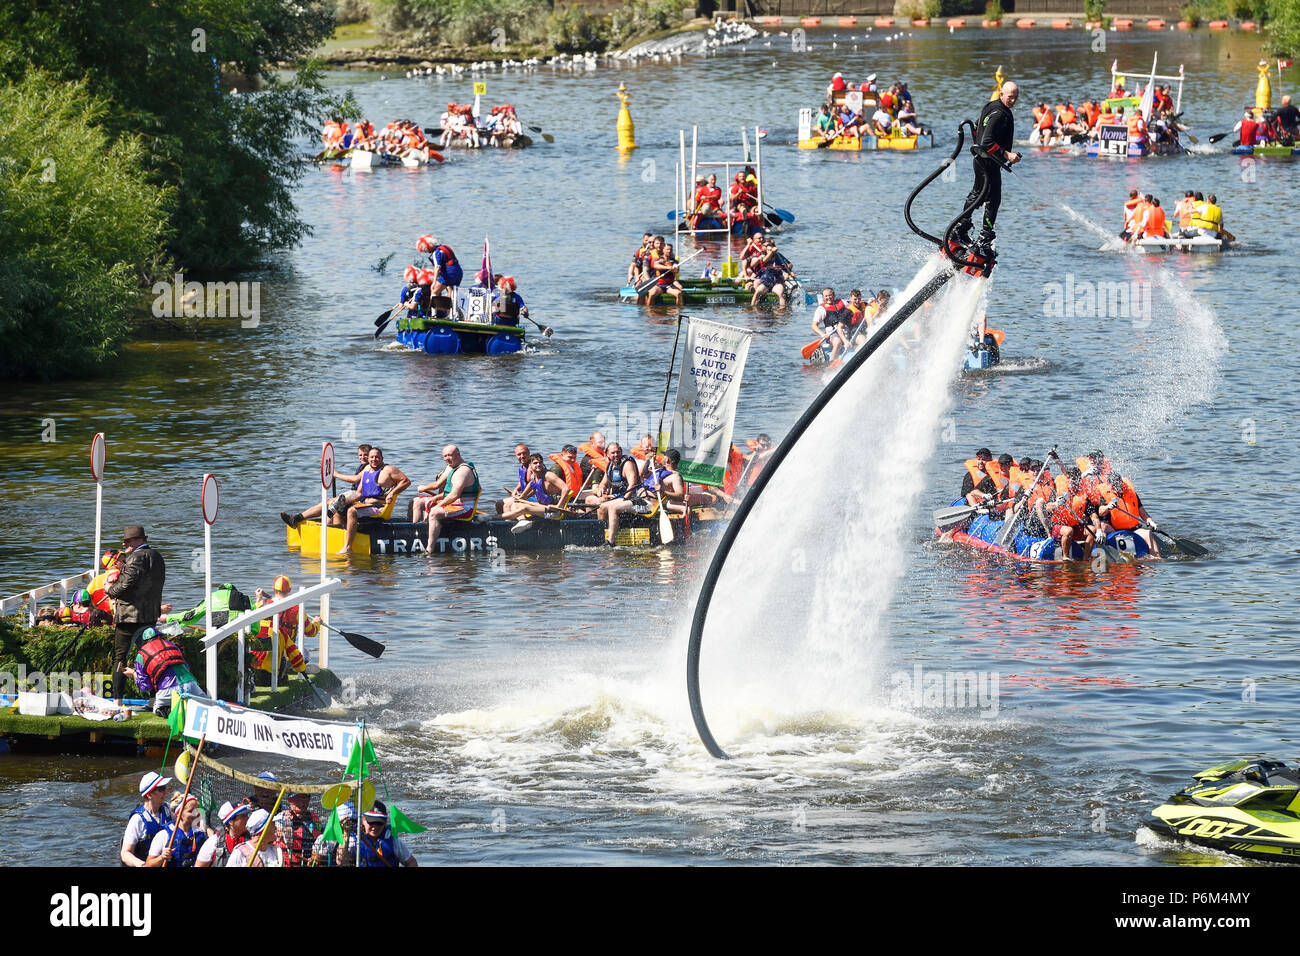 Chester, UK. 1st July 2018. The annual charity raft race on the River Dee organised by Rotary Club. Credit: Andrew Paterson/Alamy Live News - Stock Image